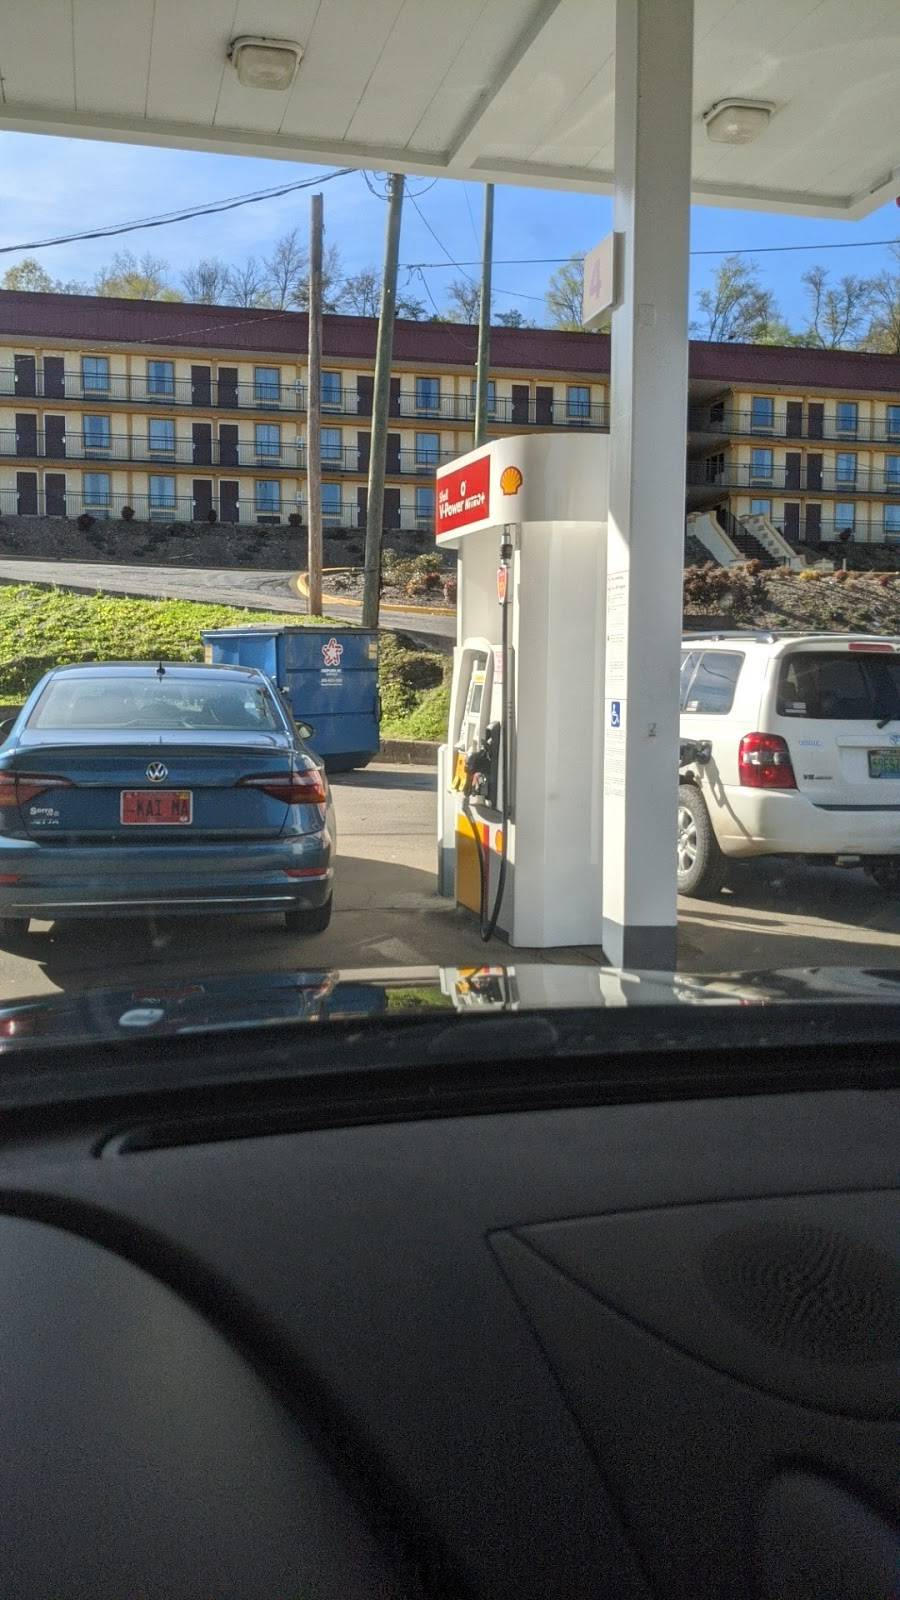 Shell - gas station  | Photo 2 of 2 | Address: 620 Decatur Hwy, Fultondale, AL 35068, USA | Phone: (205) 841-7145